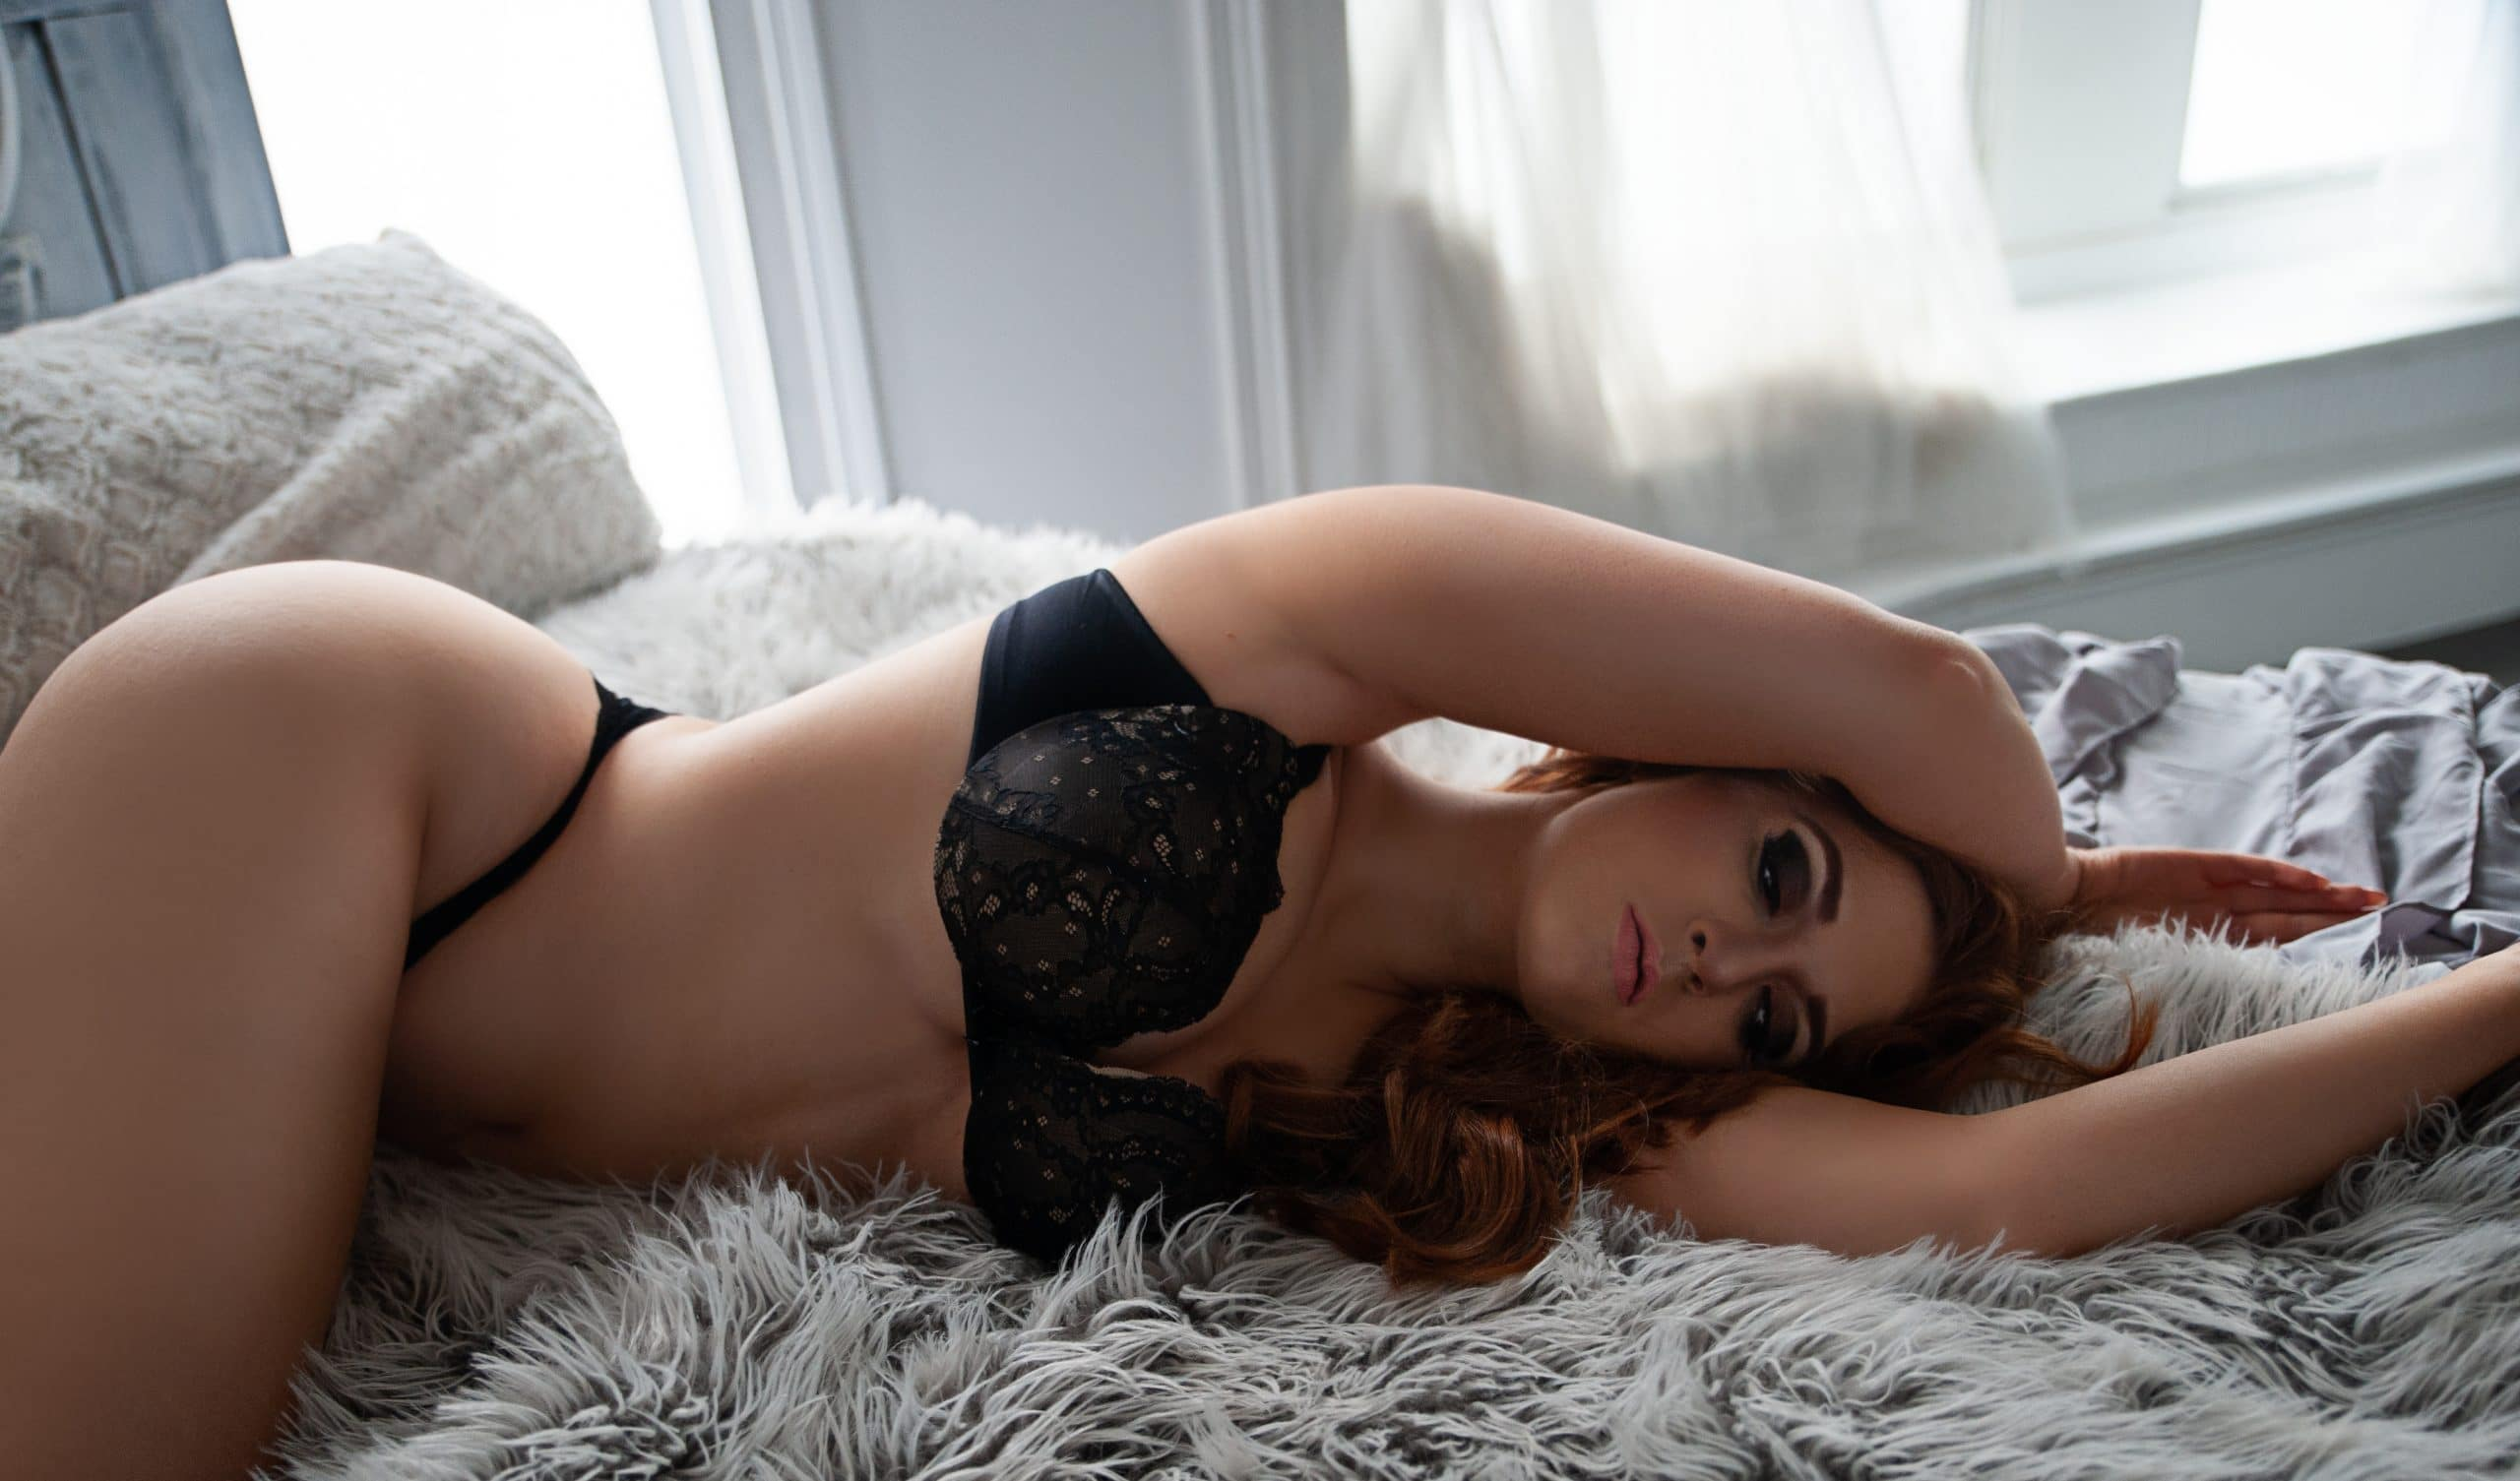 Woman posing for boudoir photoshoot on bed